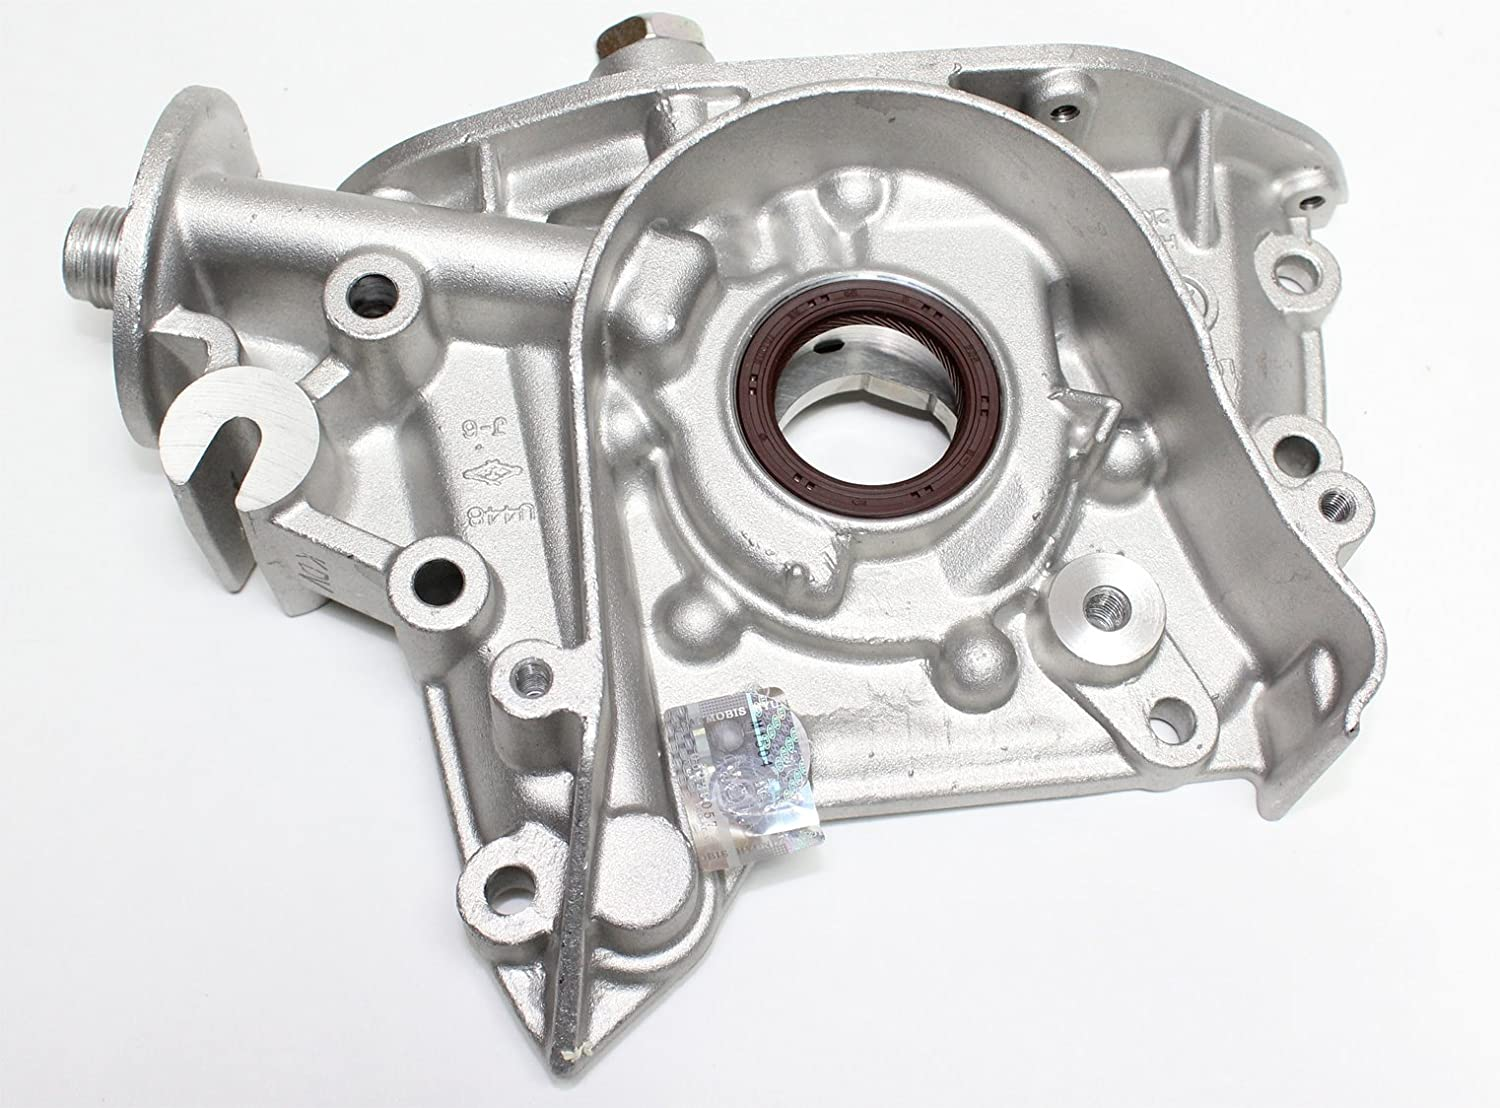 HYUNDAI Genuine Oil Pump for 21310-22650 Part: 21310226 Accent Price Genuine Free Shipping reduction